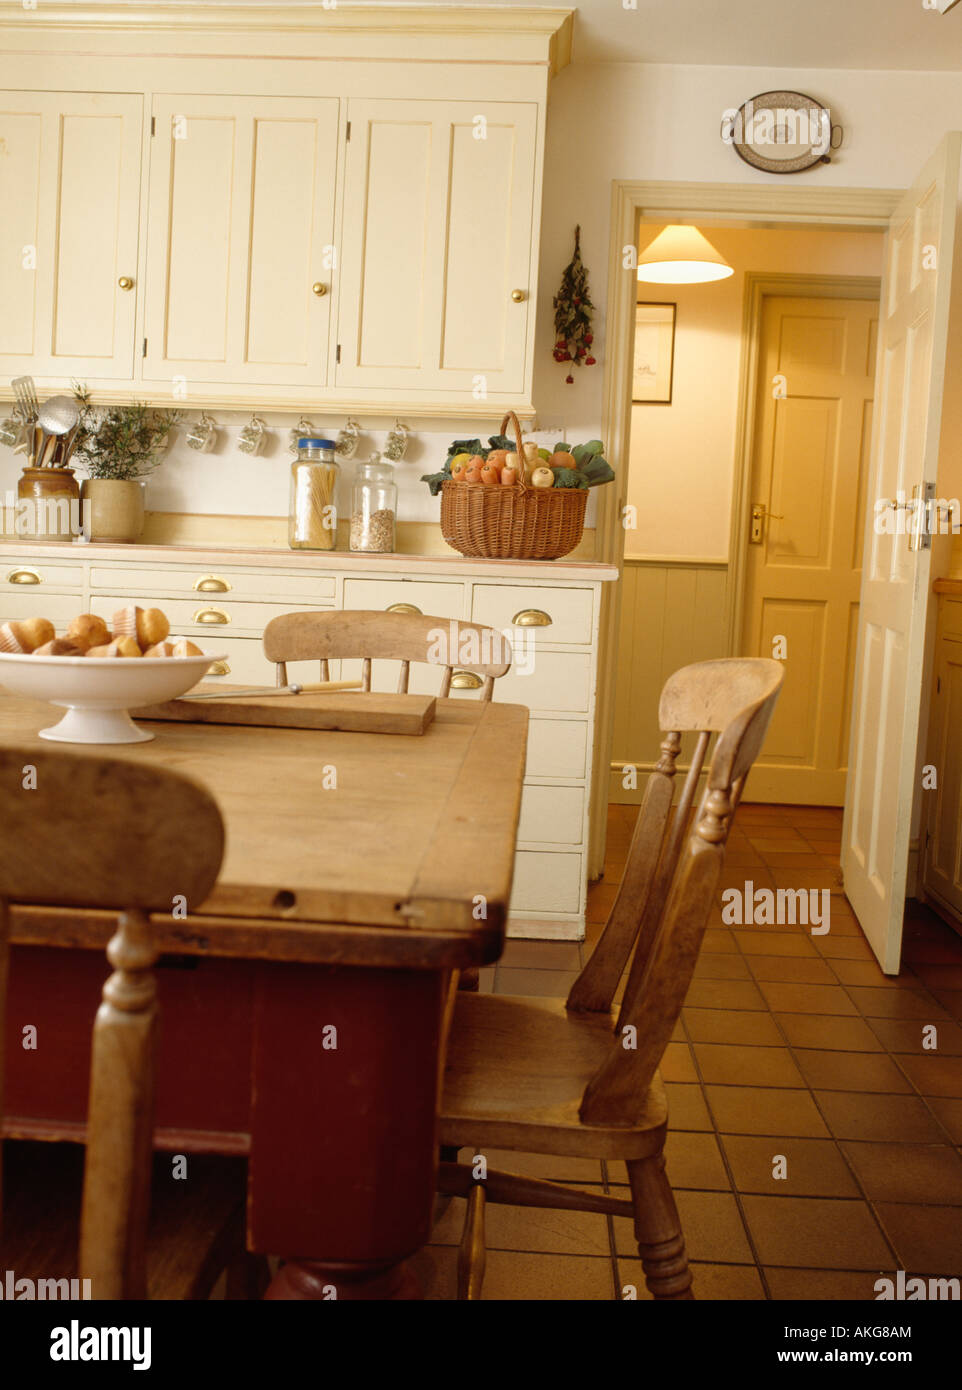 Pine Table And Chairs In Cream Country Kitchen With Terracotta Tiled Floor